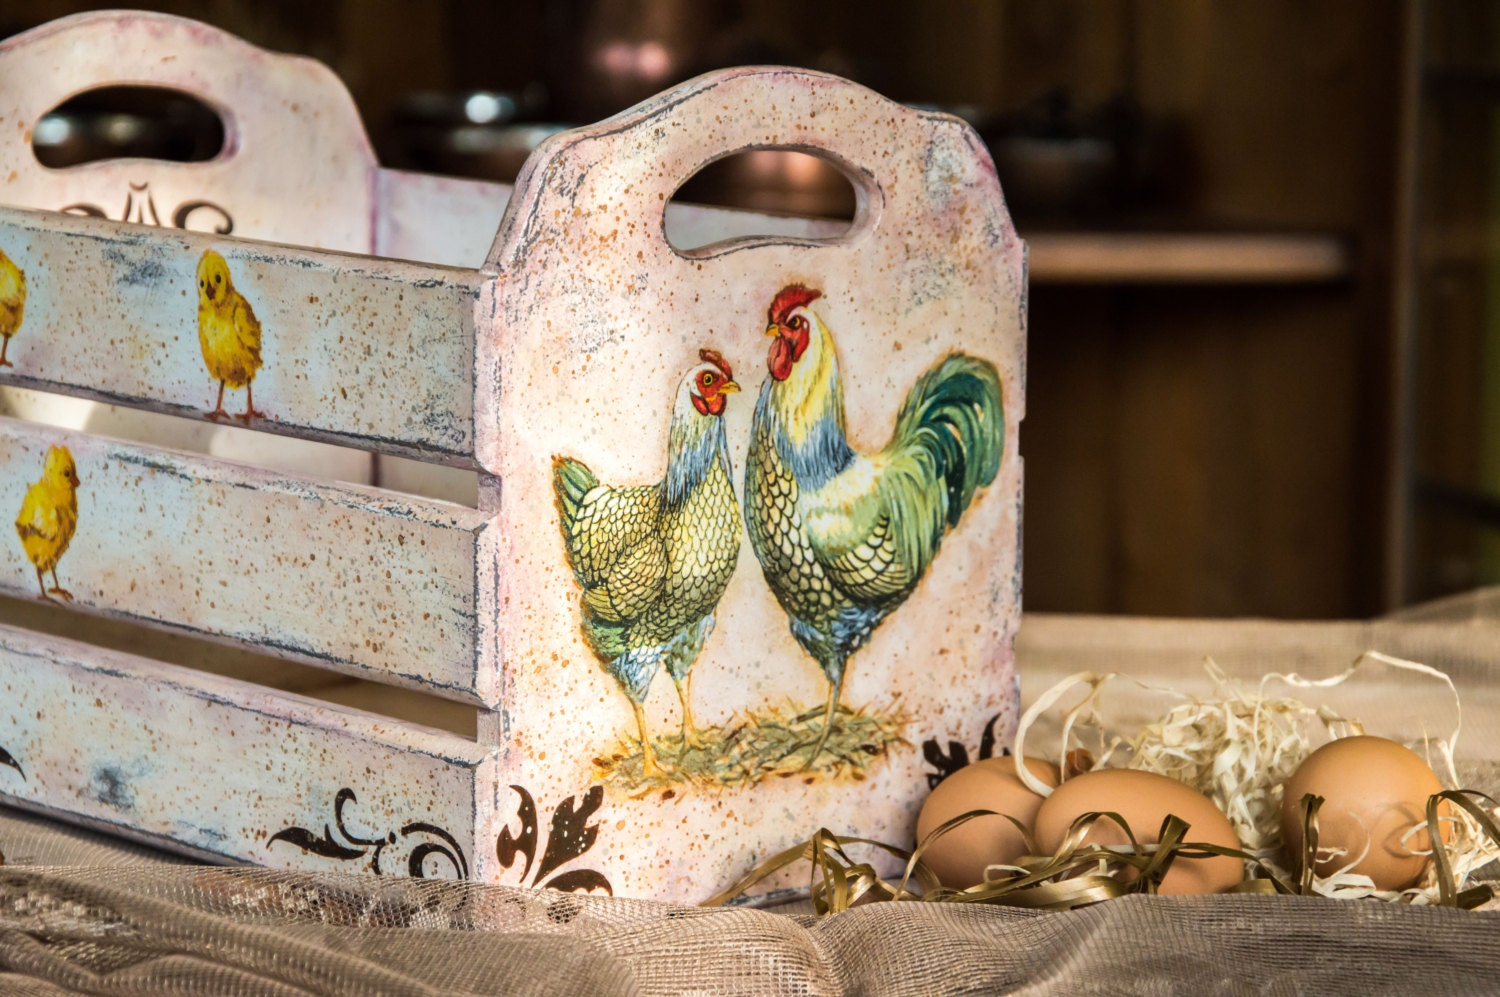 Farmhouse decor rooster kitchen decor country rooster - Kitchen rooster decor ...